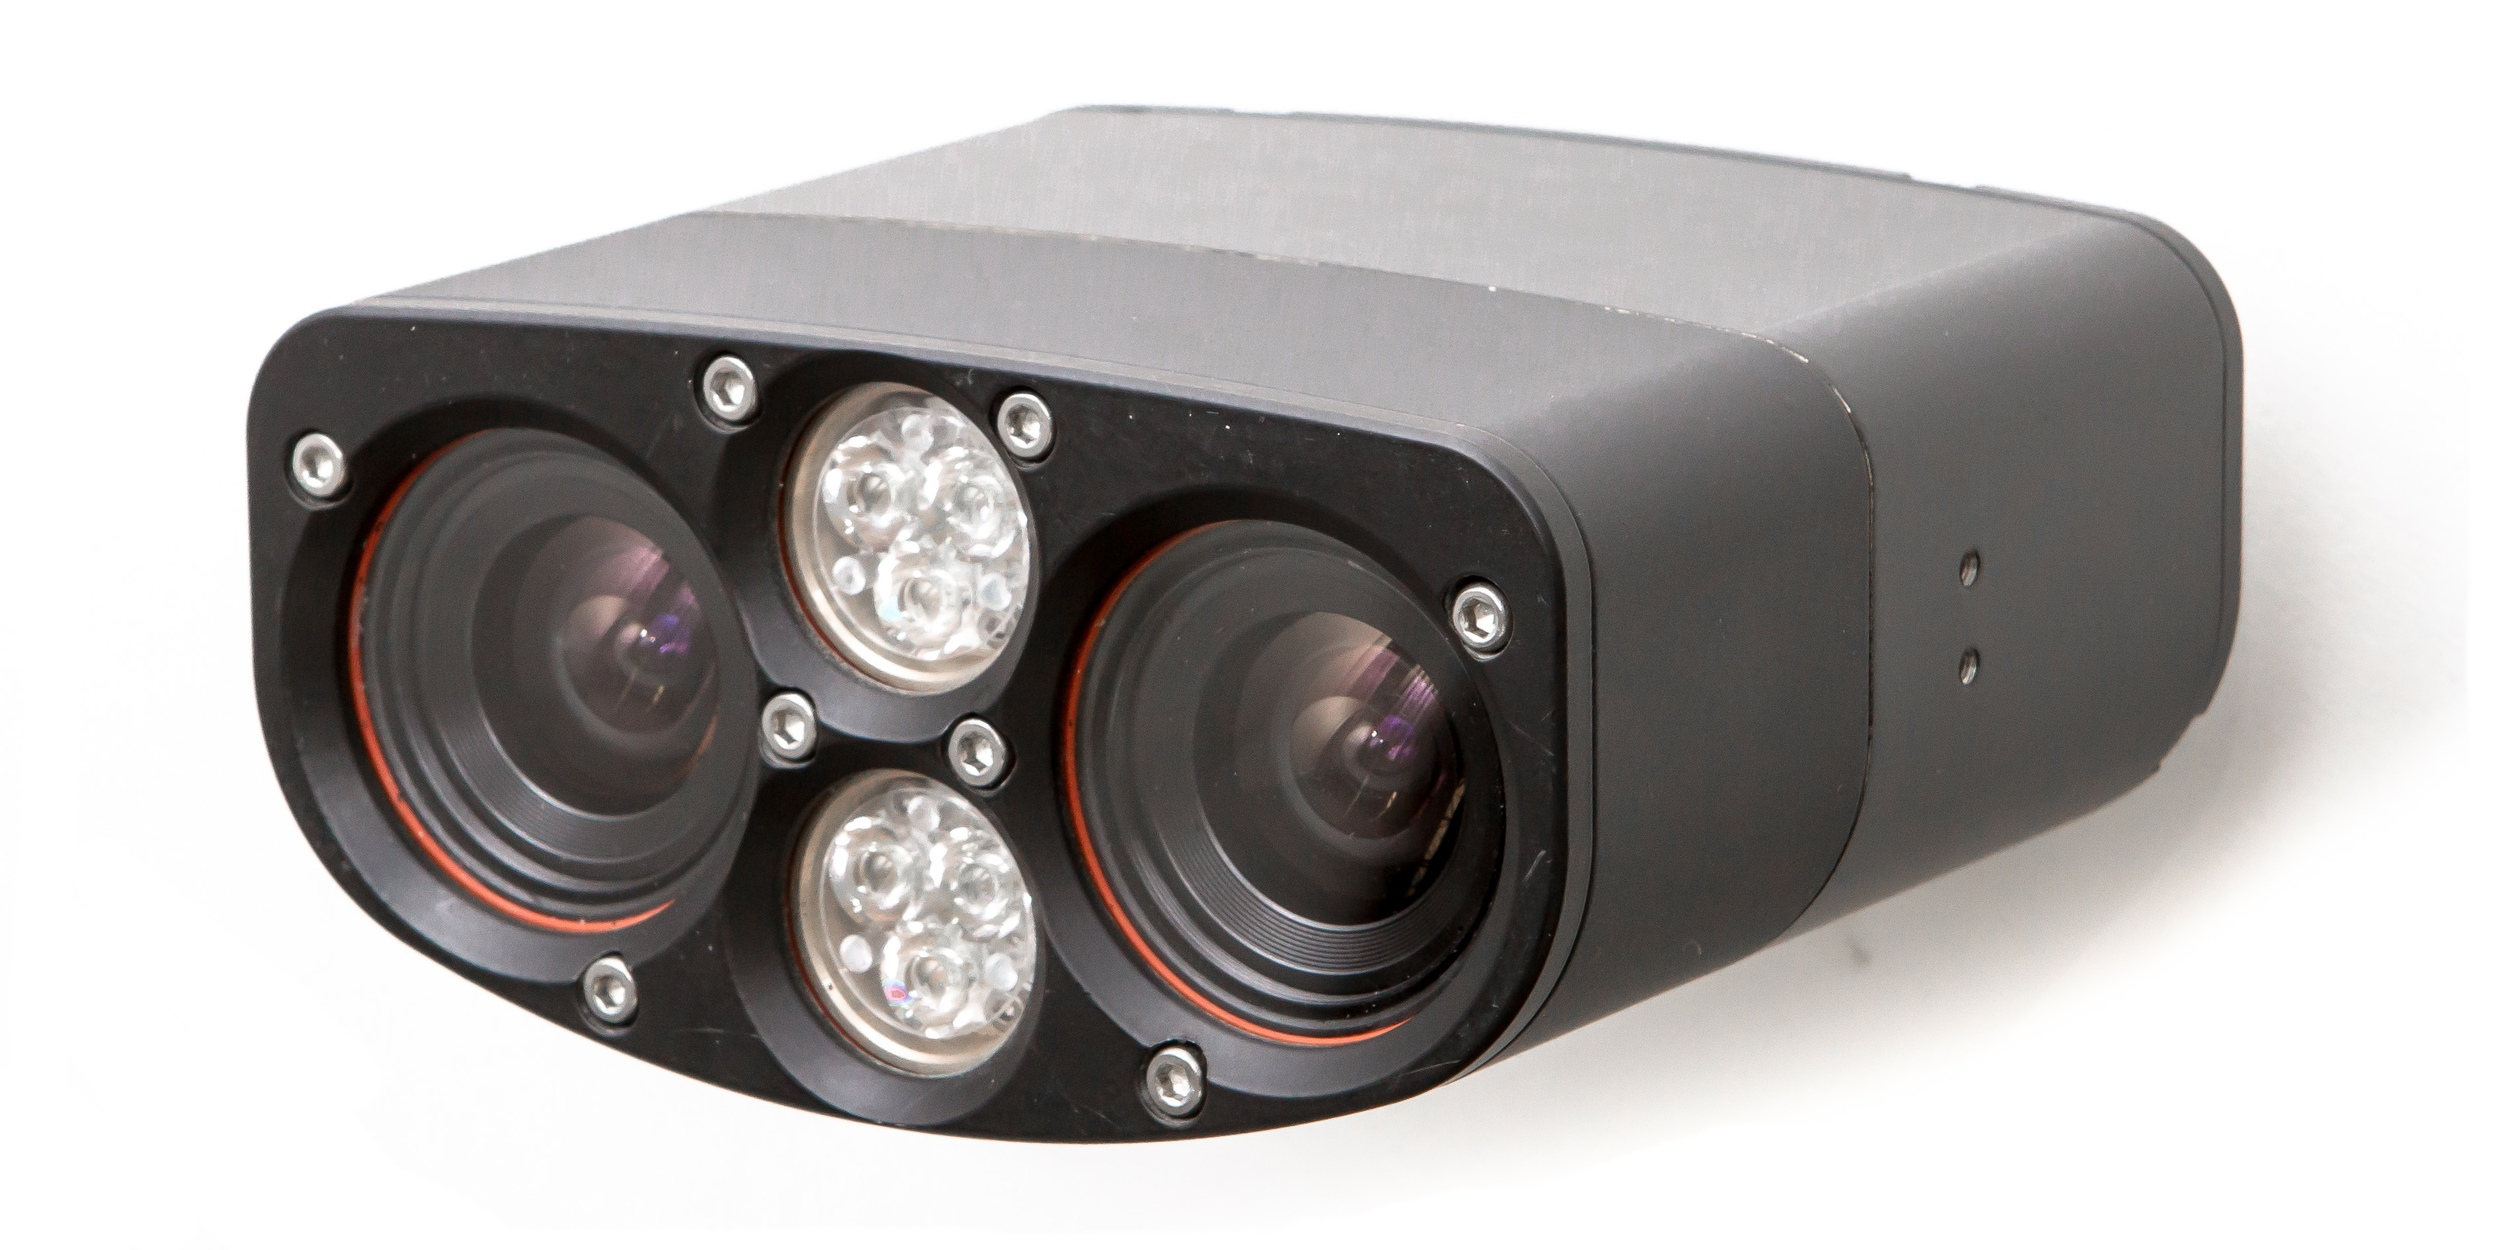 MultiSense S7 is a compact and accurate 3D range sensor